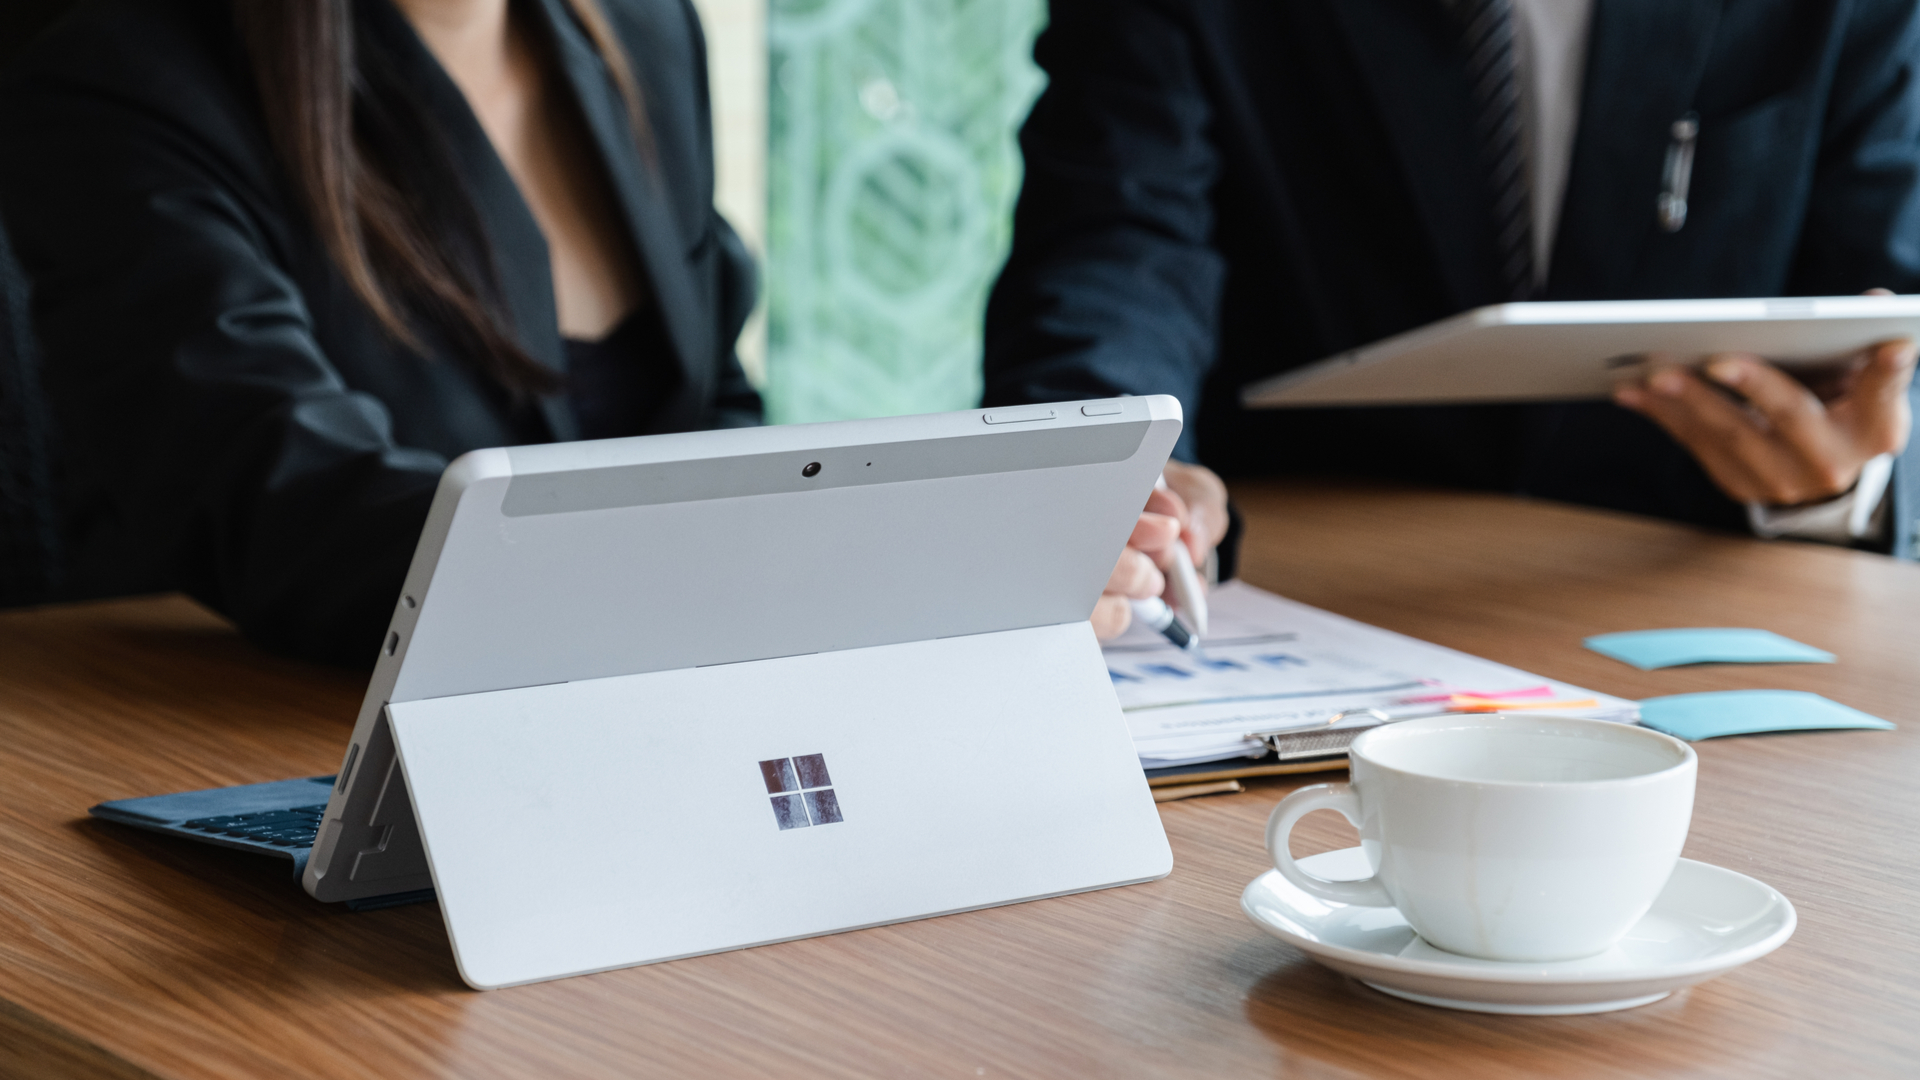 Microsoft Surface tablet on desk with businesman and businesswoman